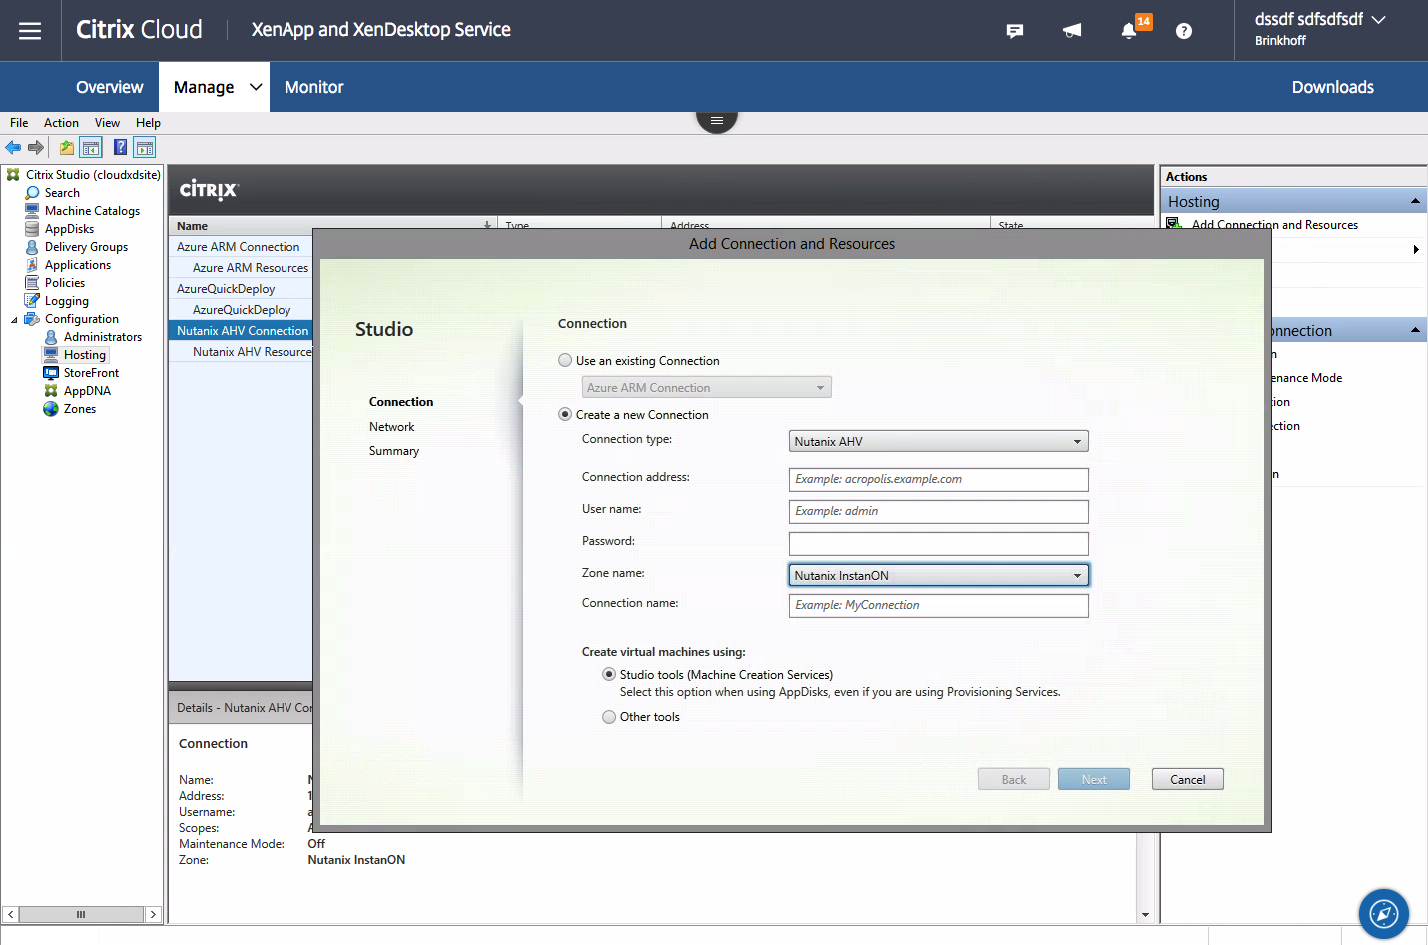 Using Citrix Cloud Virtual Apps and Desktops with Nutanix